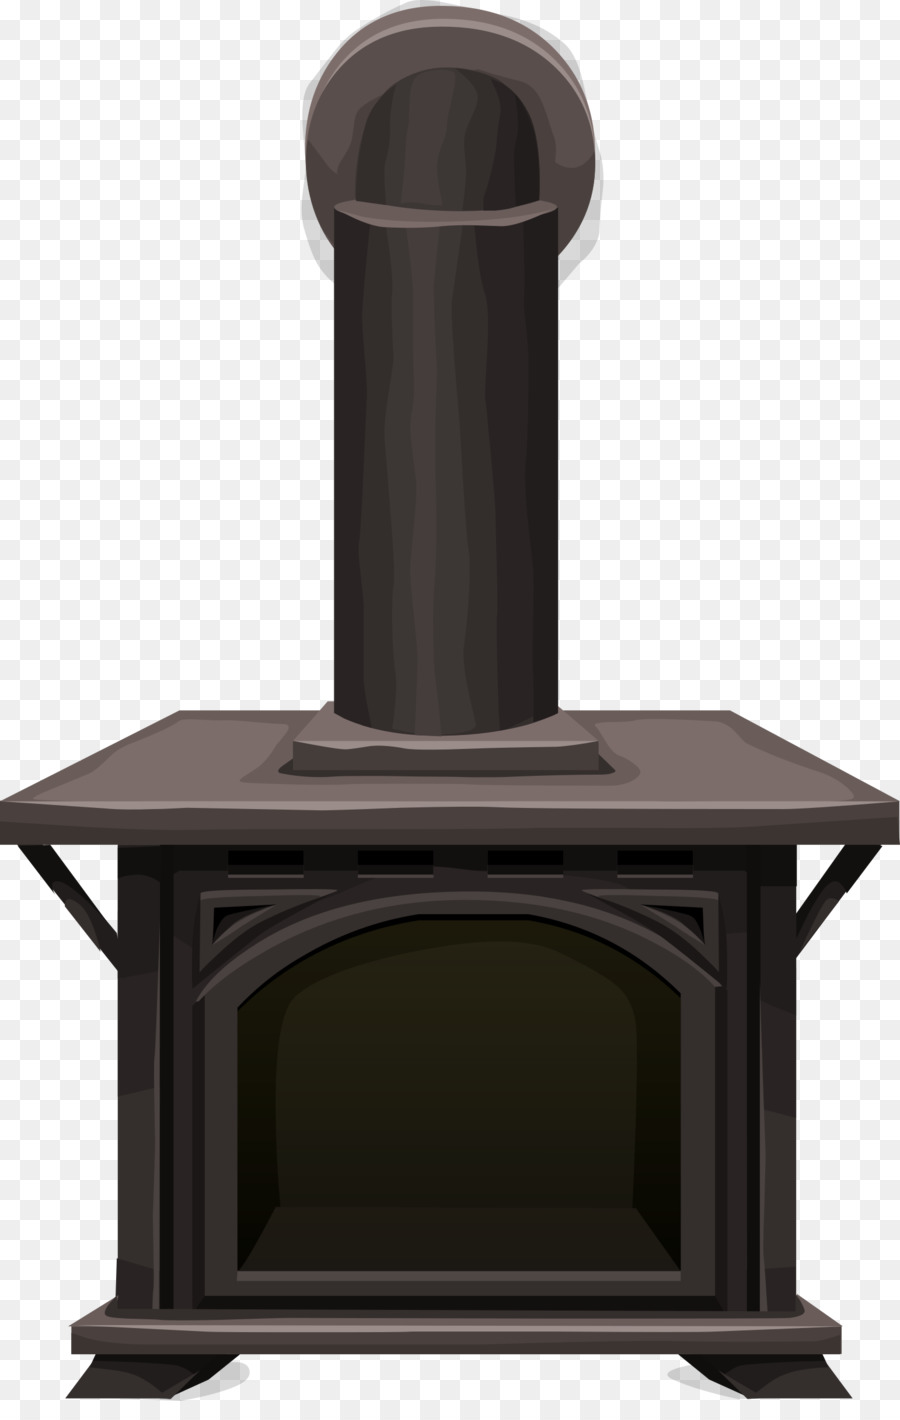 Wood burning stove clipart images clip free download Fire Cartoon clipart - Wood, Fire, Product, transparent clip art clip free download